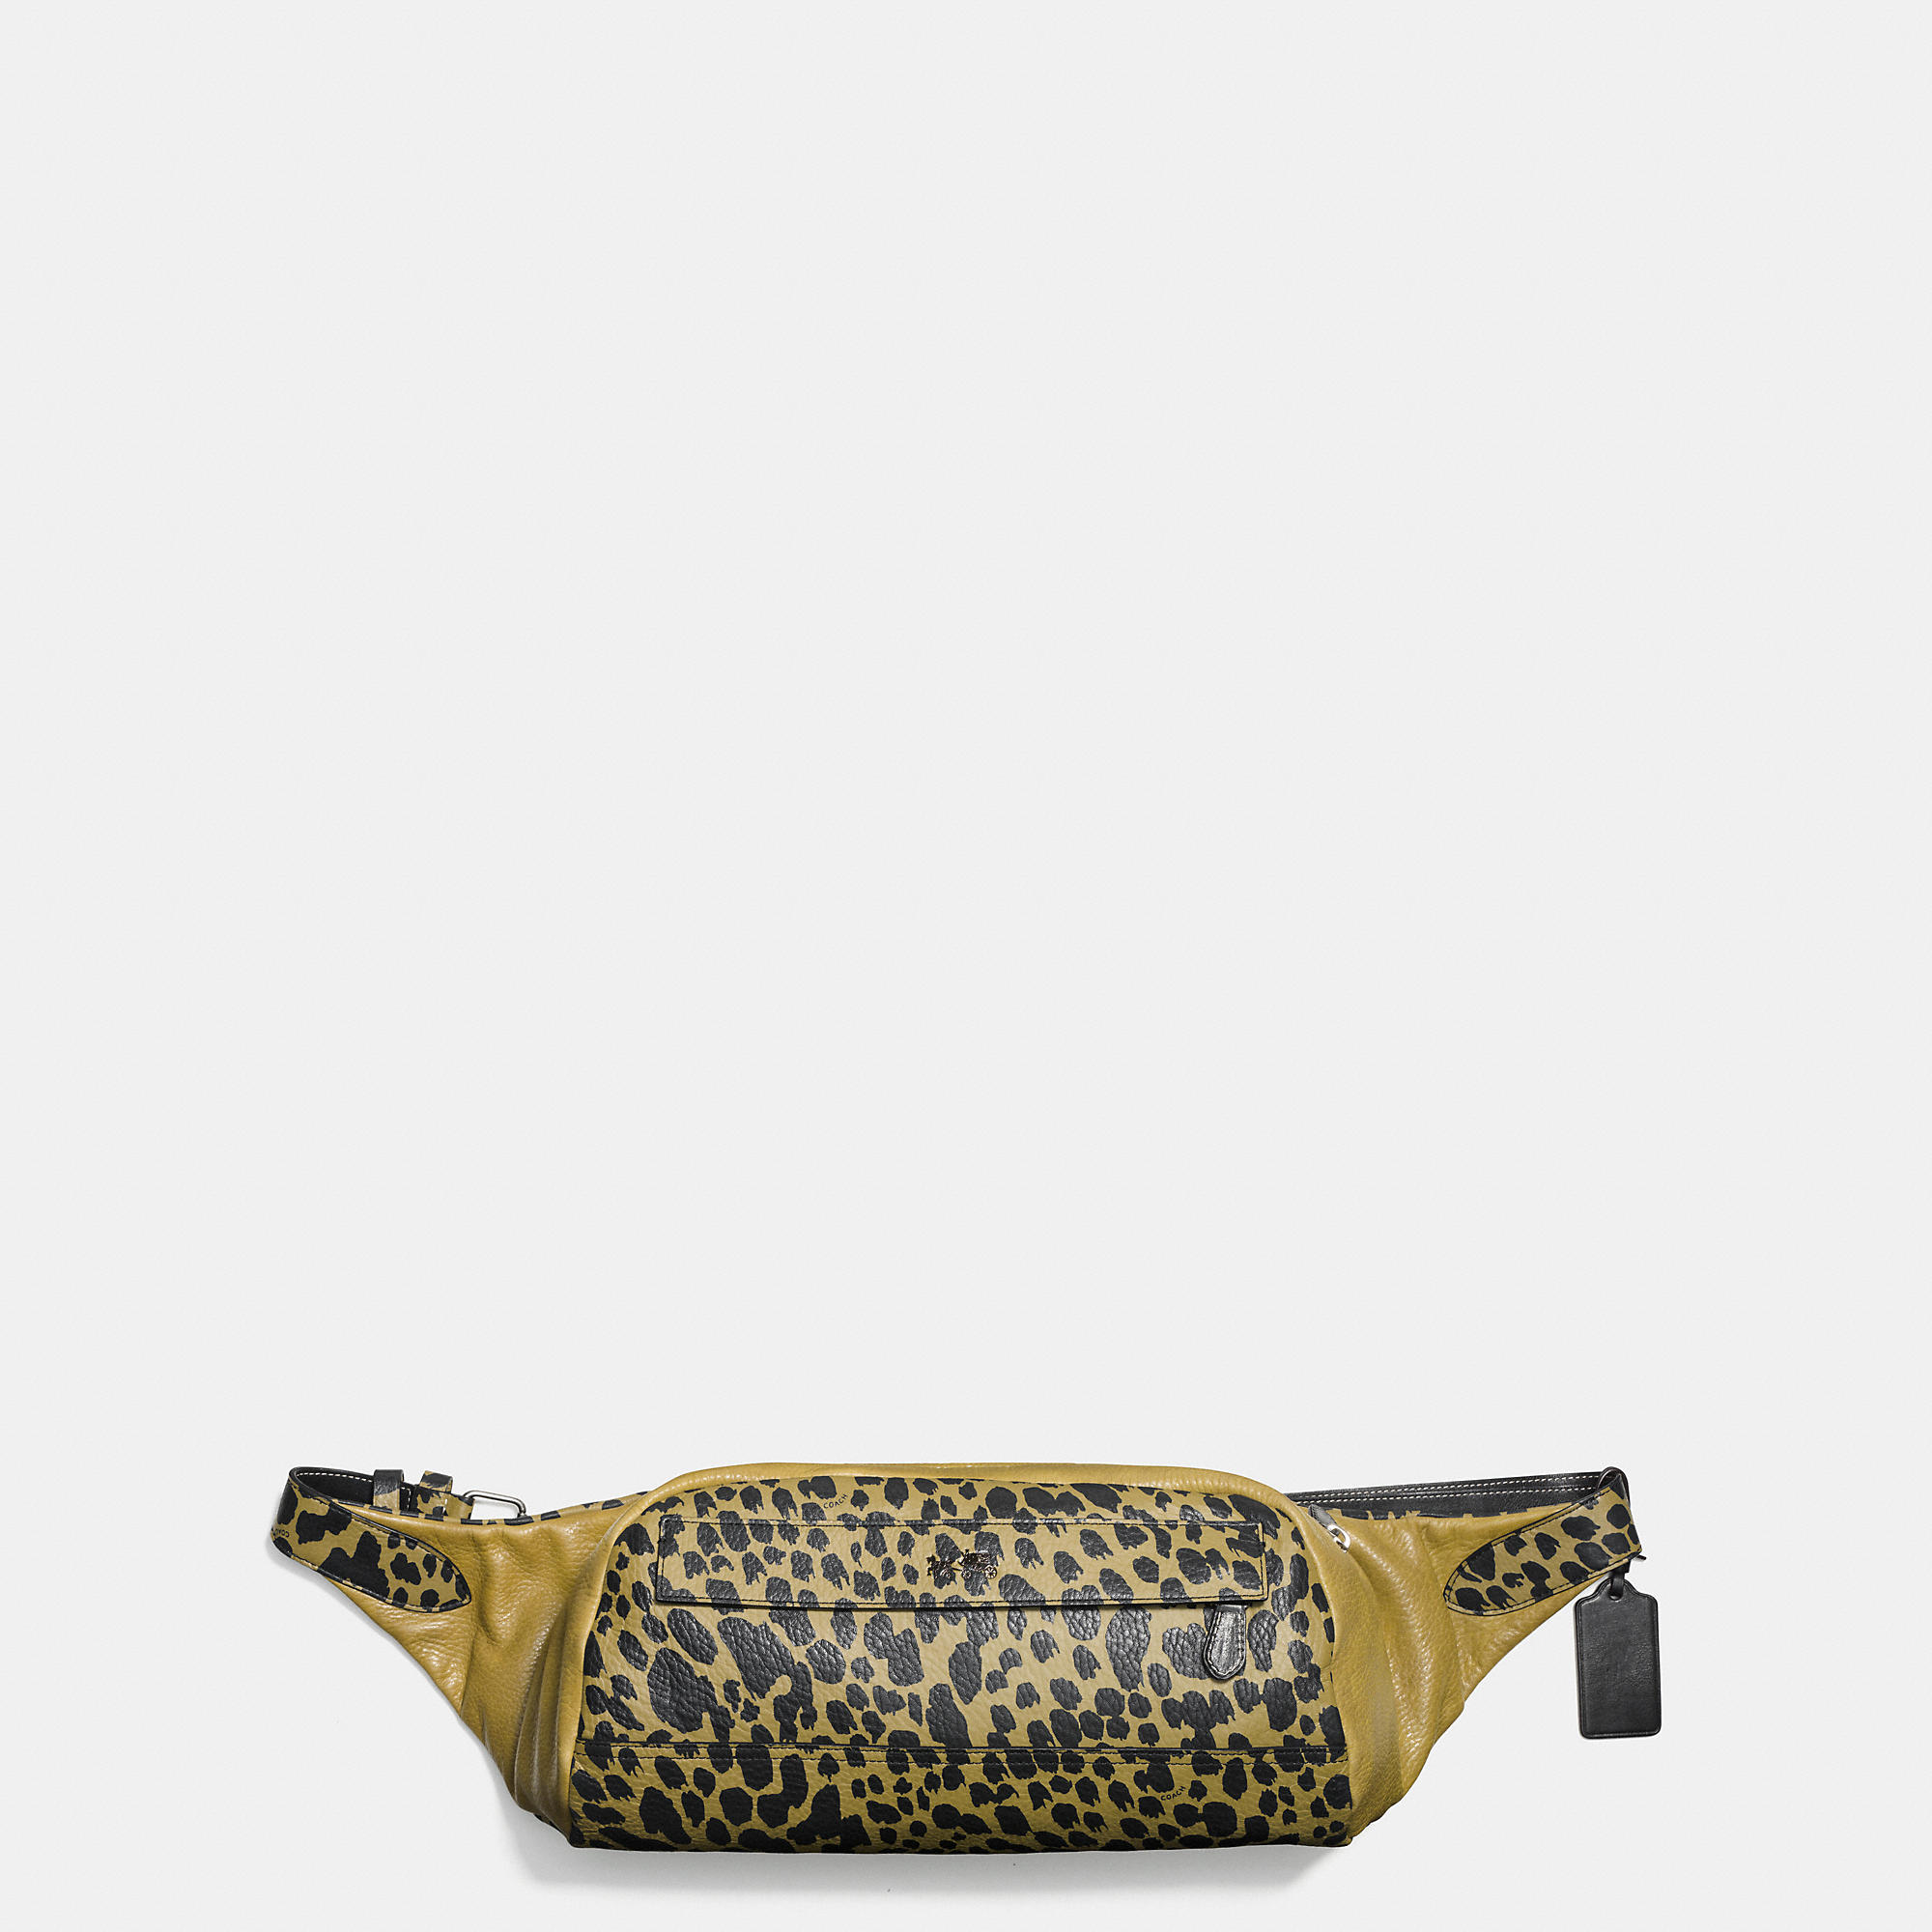 Coach 1941 Small Hip Bag In Printed Pebble Leather